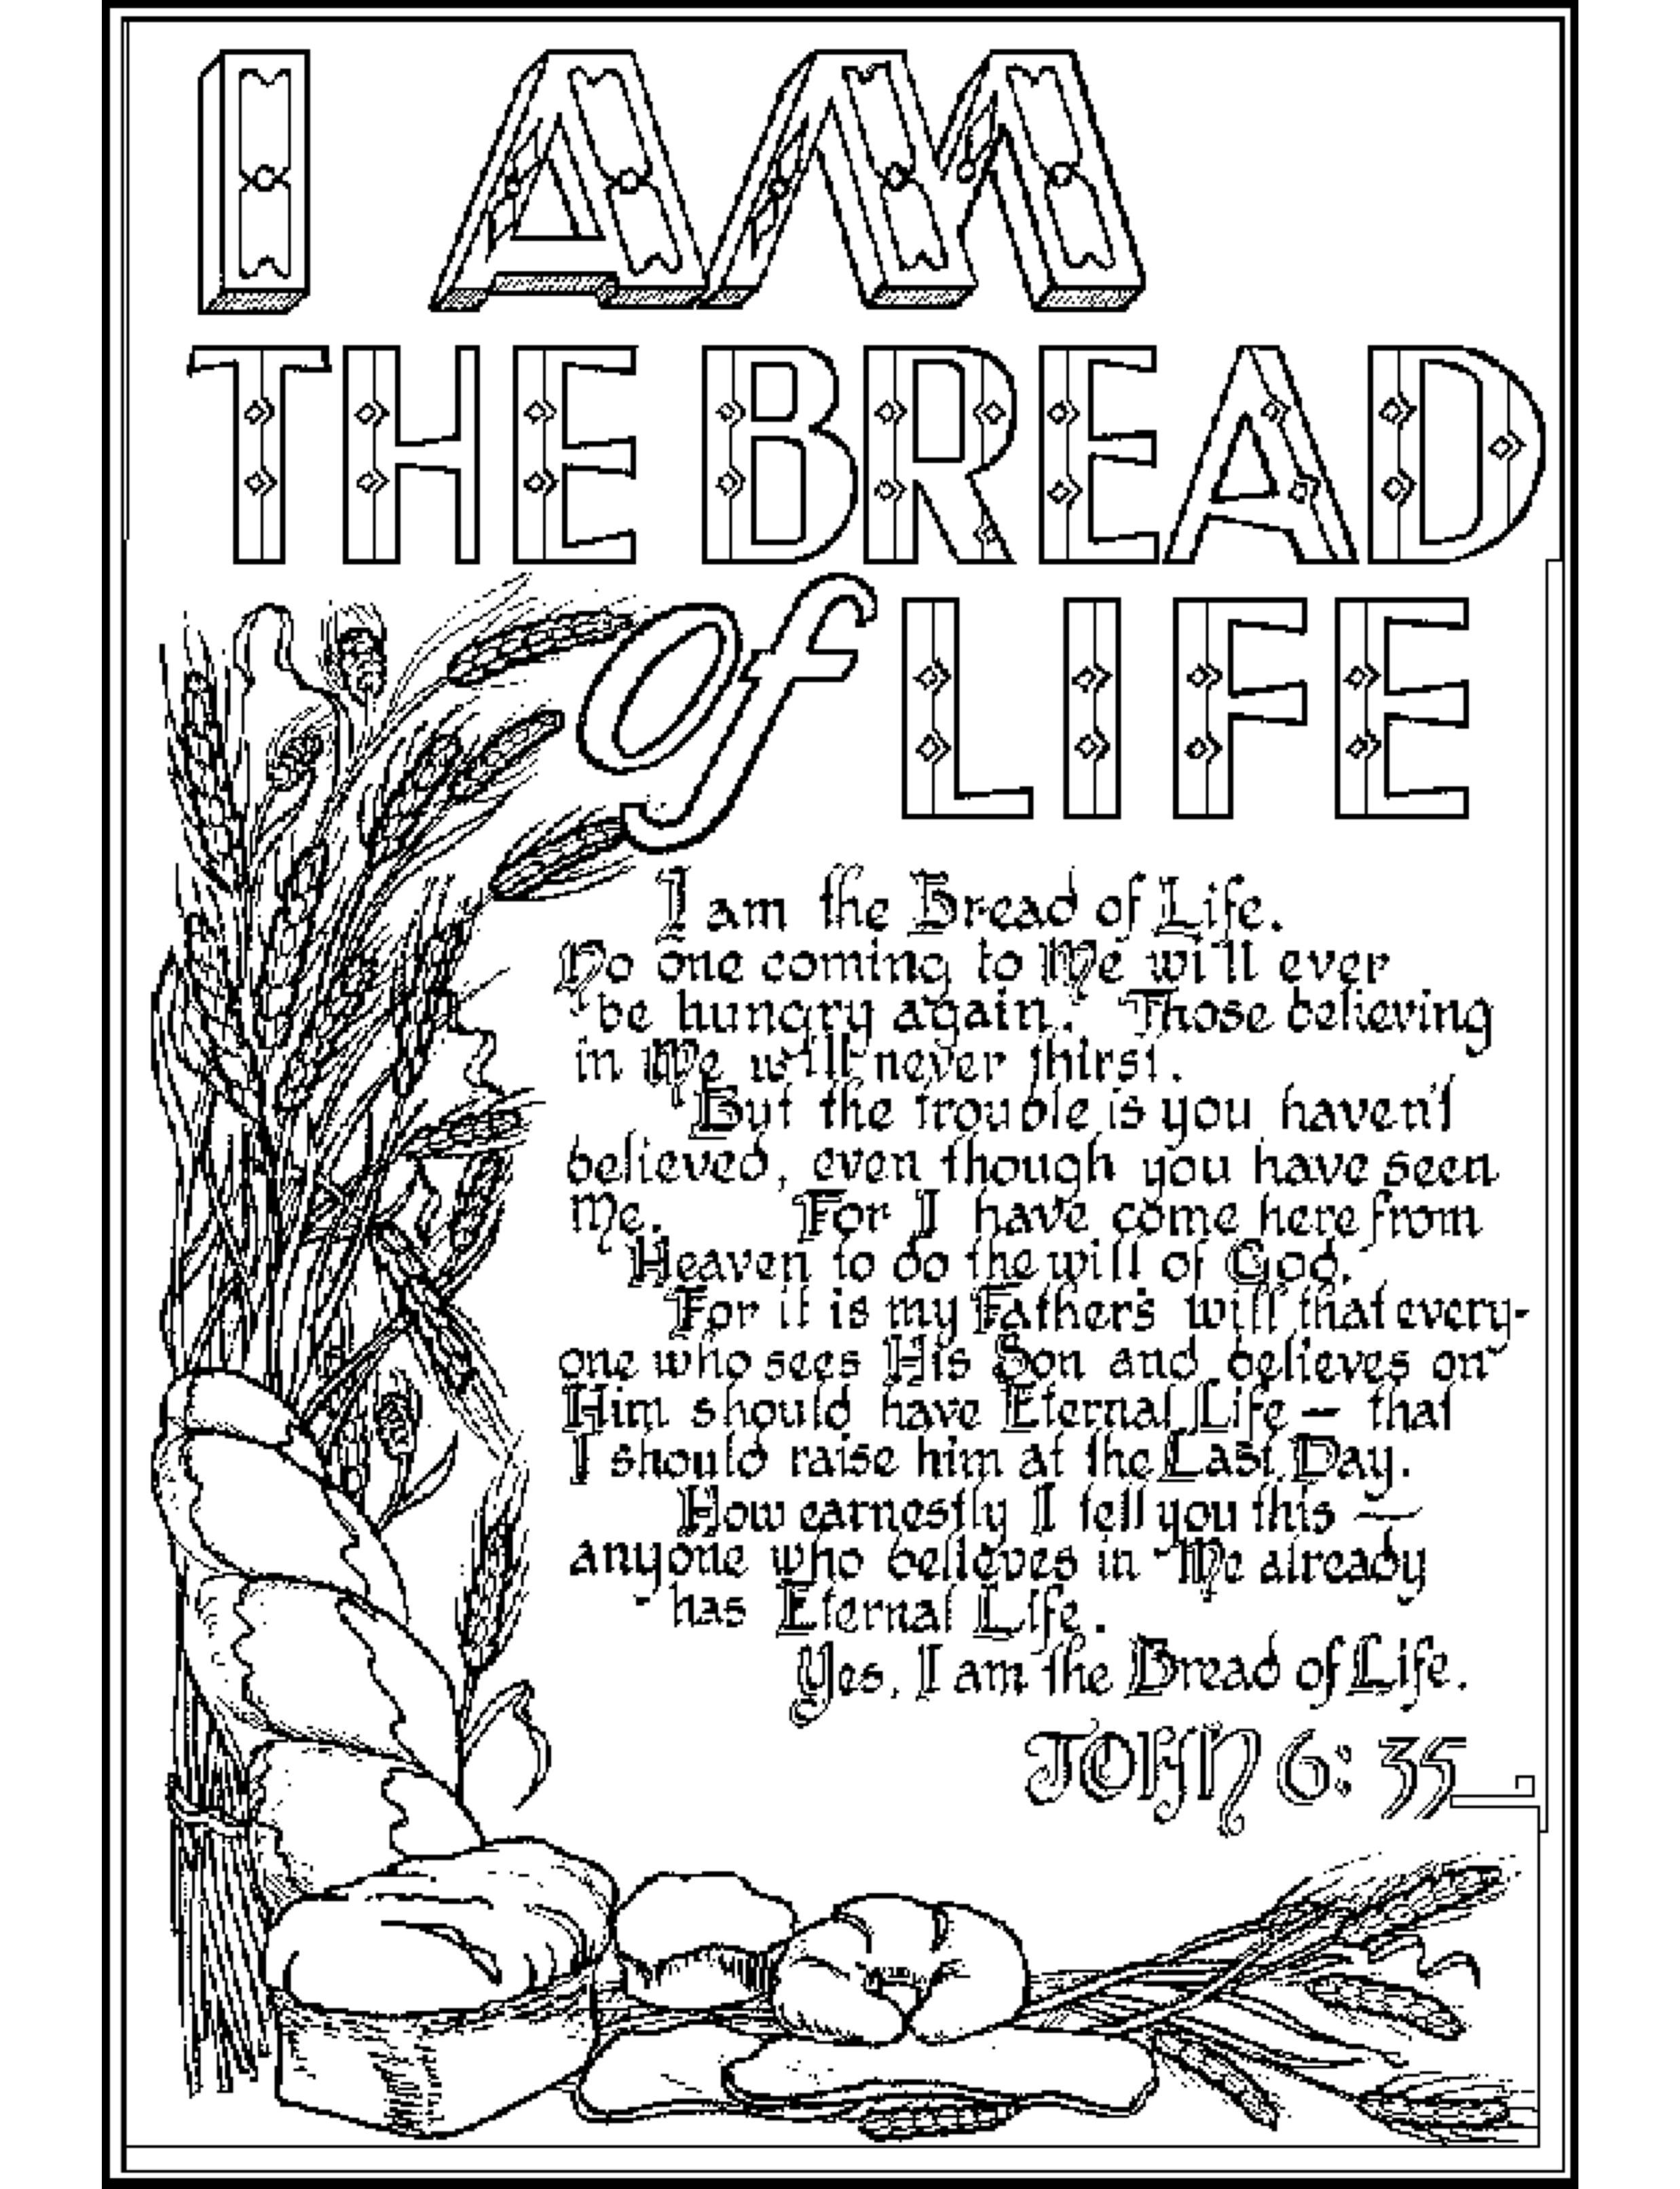 Adult Beauty Scripture Coloring Pages Gallery Images beauty 1000 images about scripture coloring pages on pinterest christmas angels and gallery images